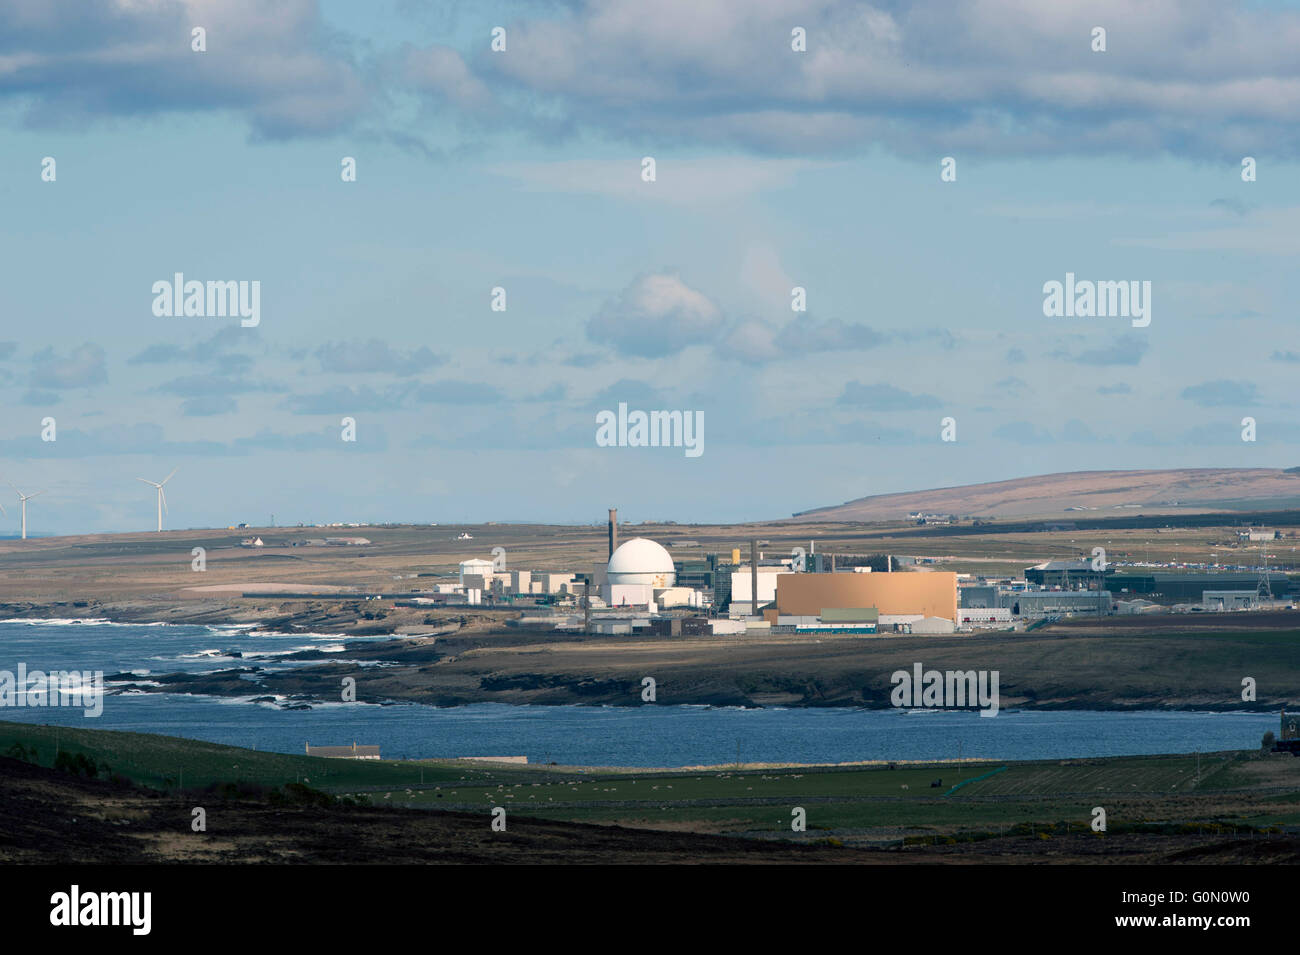 28/04/2016, A view of the former Dounreay Nuclear Power Station, Reay, Caithness, Scotland UK, which is being decommissioned. - Stock Image